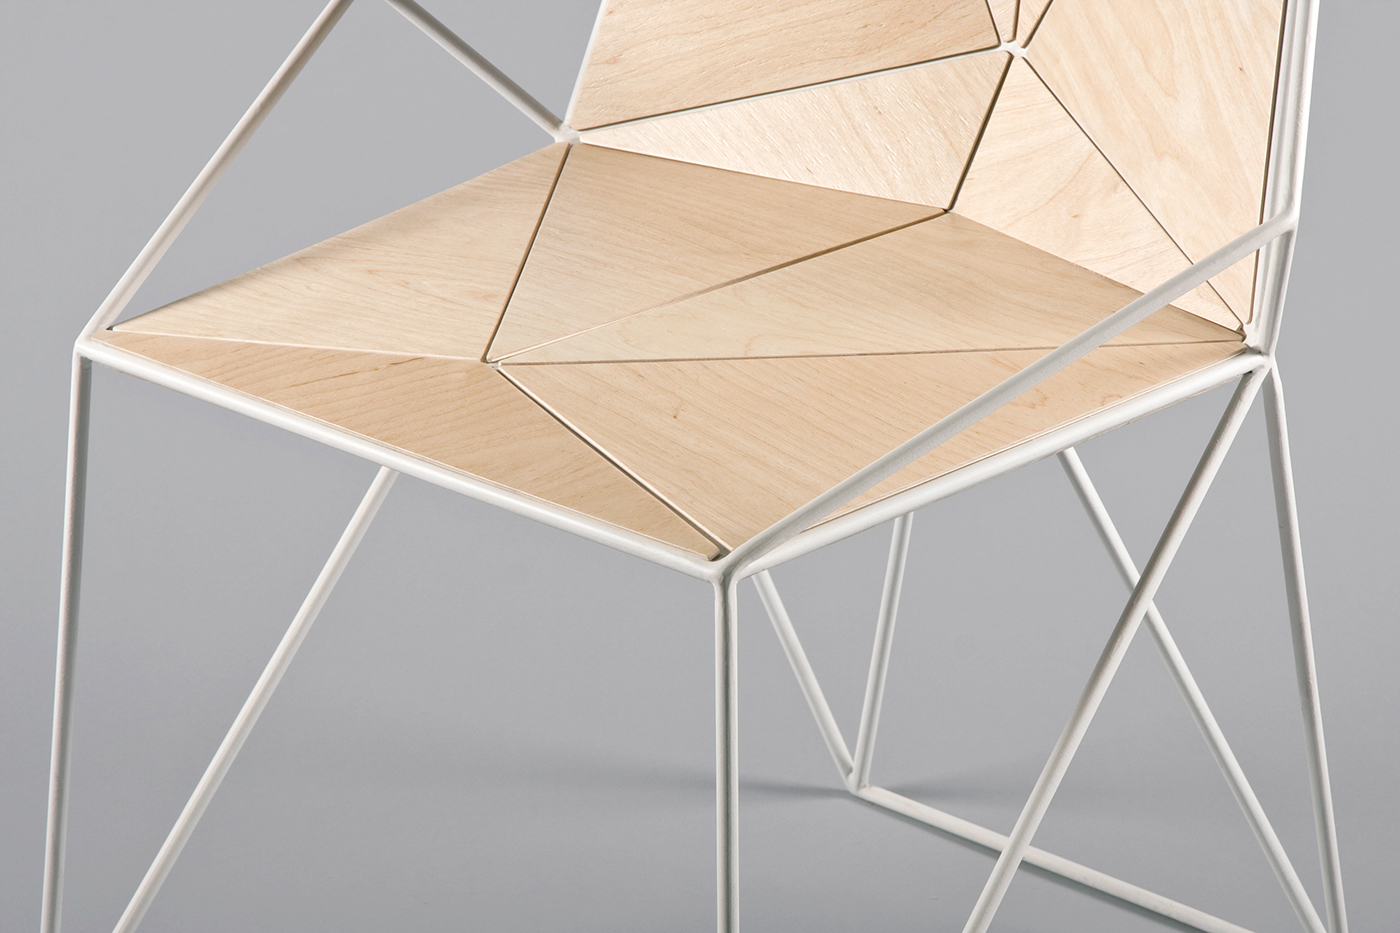 furniture product design plan-s23 wood chair metal construction polygonal